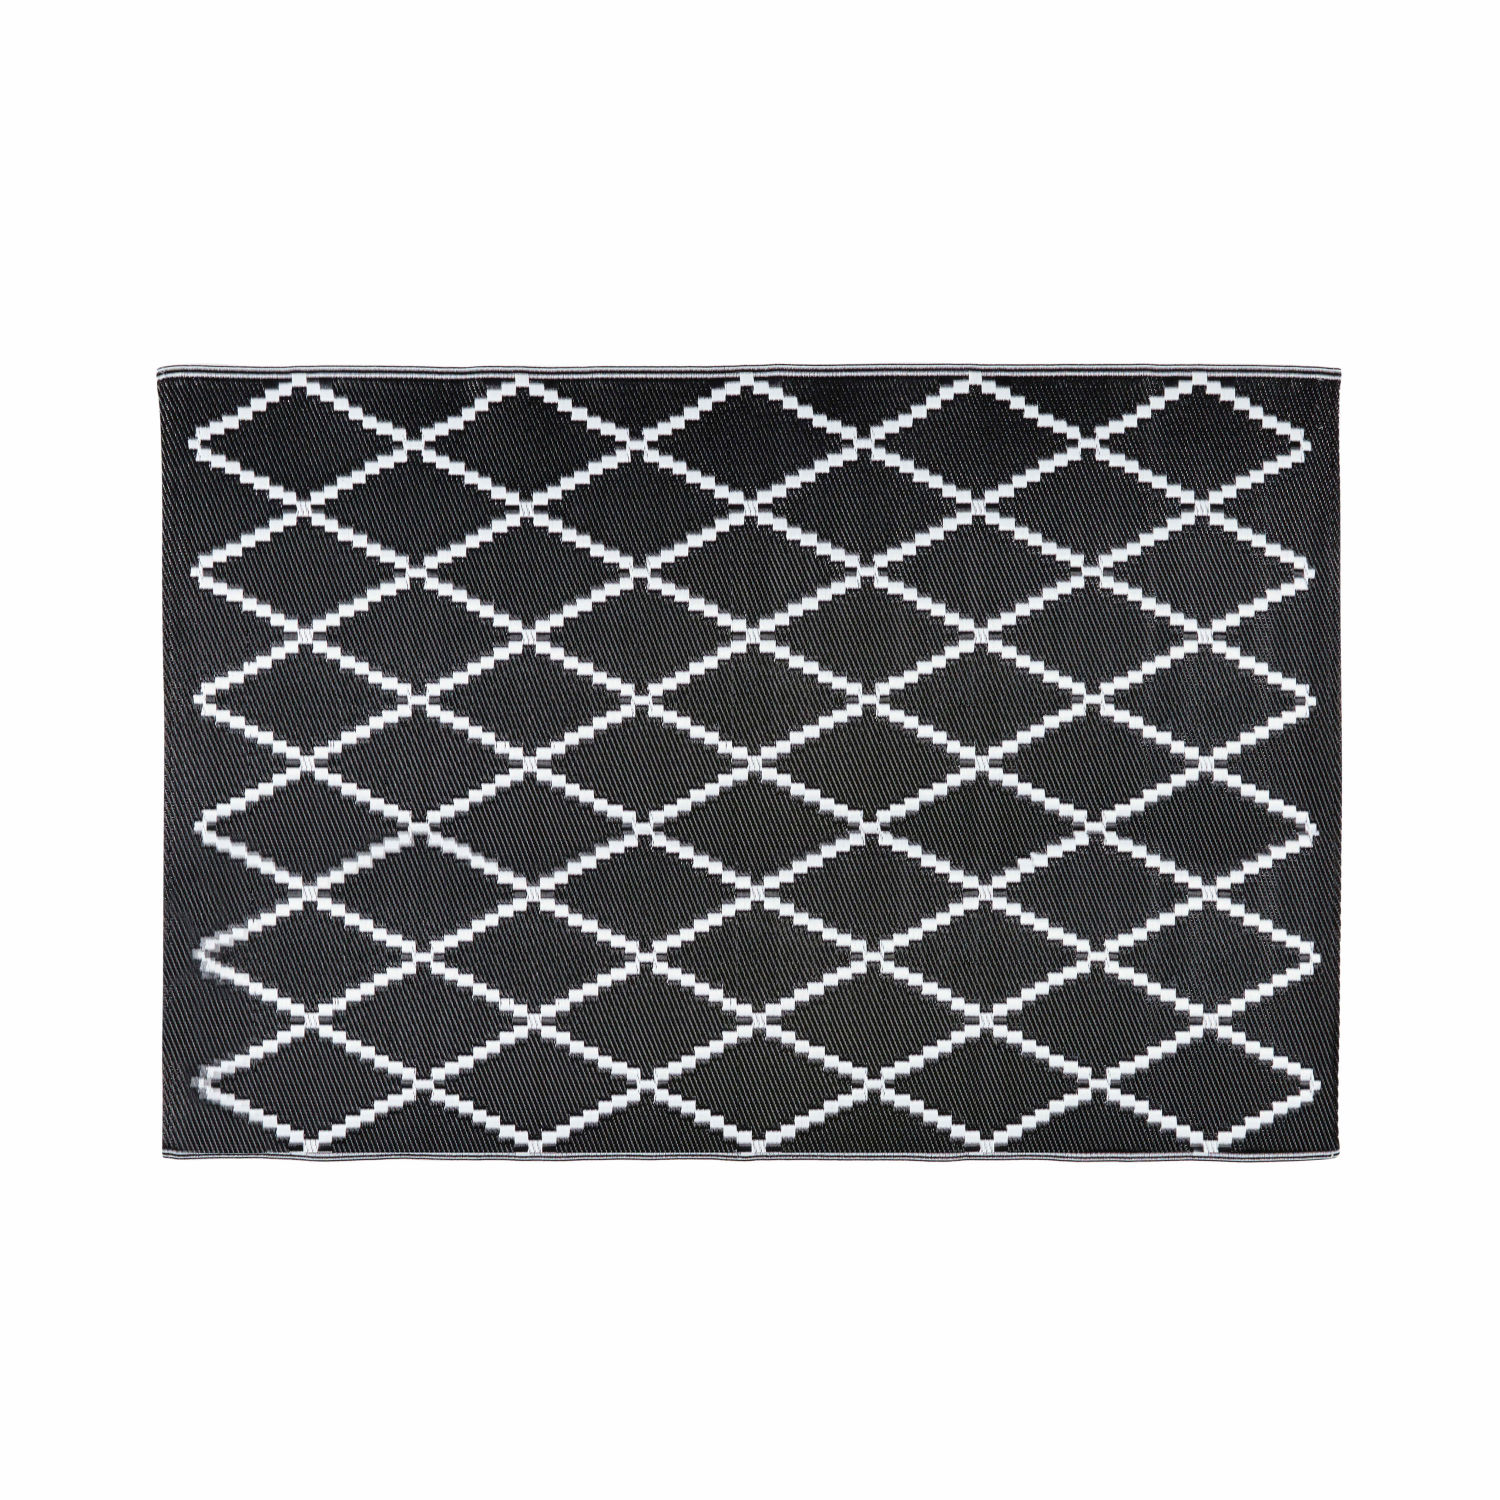 tapis de jardin motifs g om triques noirs et blancs 120x180 maisons du monde. Black Bedroom Furniture Sets. Home Design Ideas